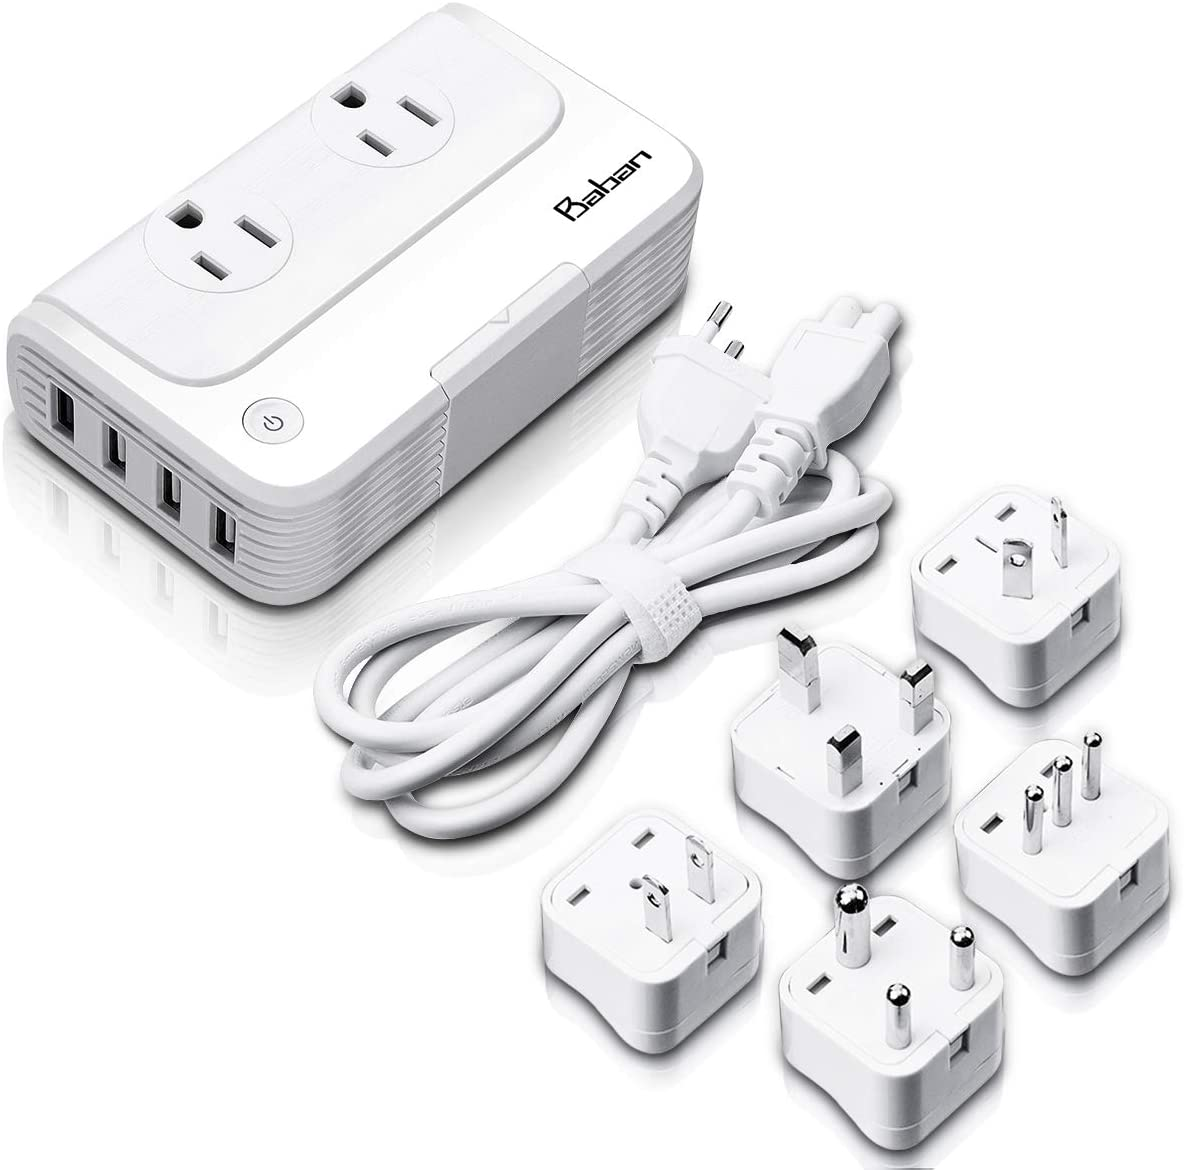 Baban Voltage Converter Travel Adapter, Step Down 220V to 110V Power Converter with 4-Port USB Charging, Worldwide Plug Adapter with UK/AU/US/EU/in/IT Plug for International Travel, White